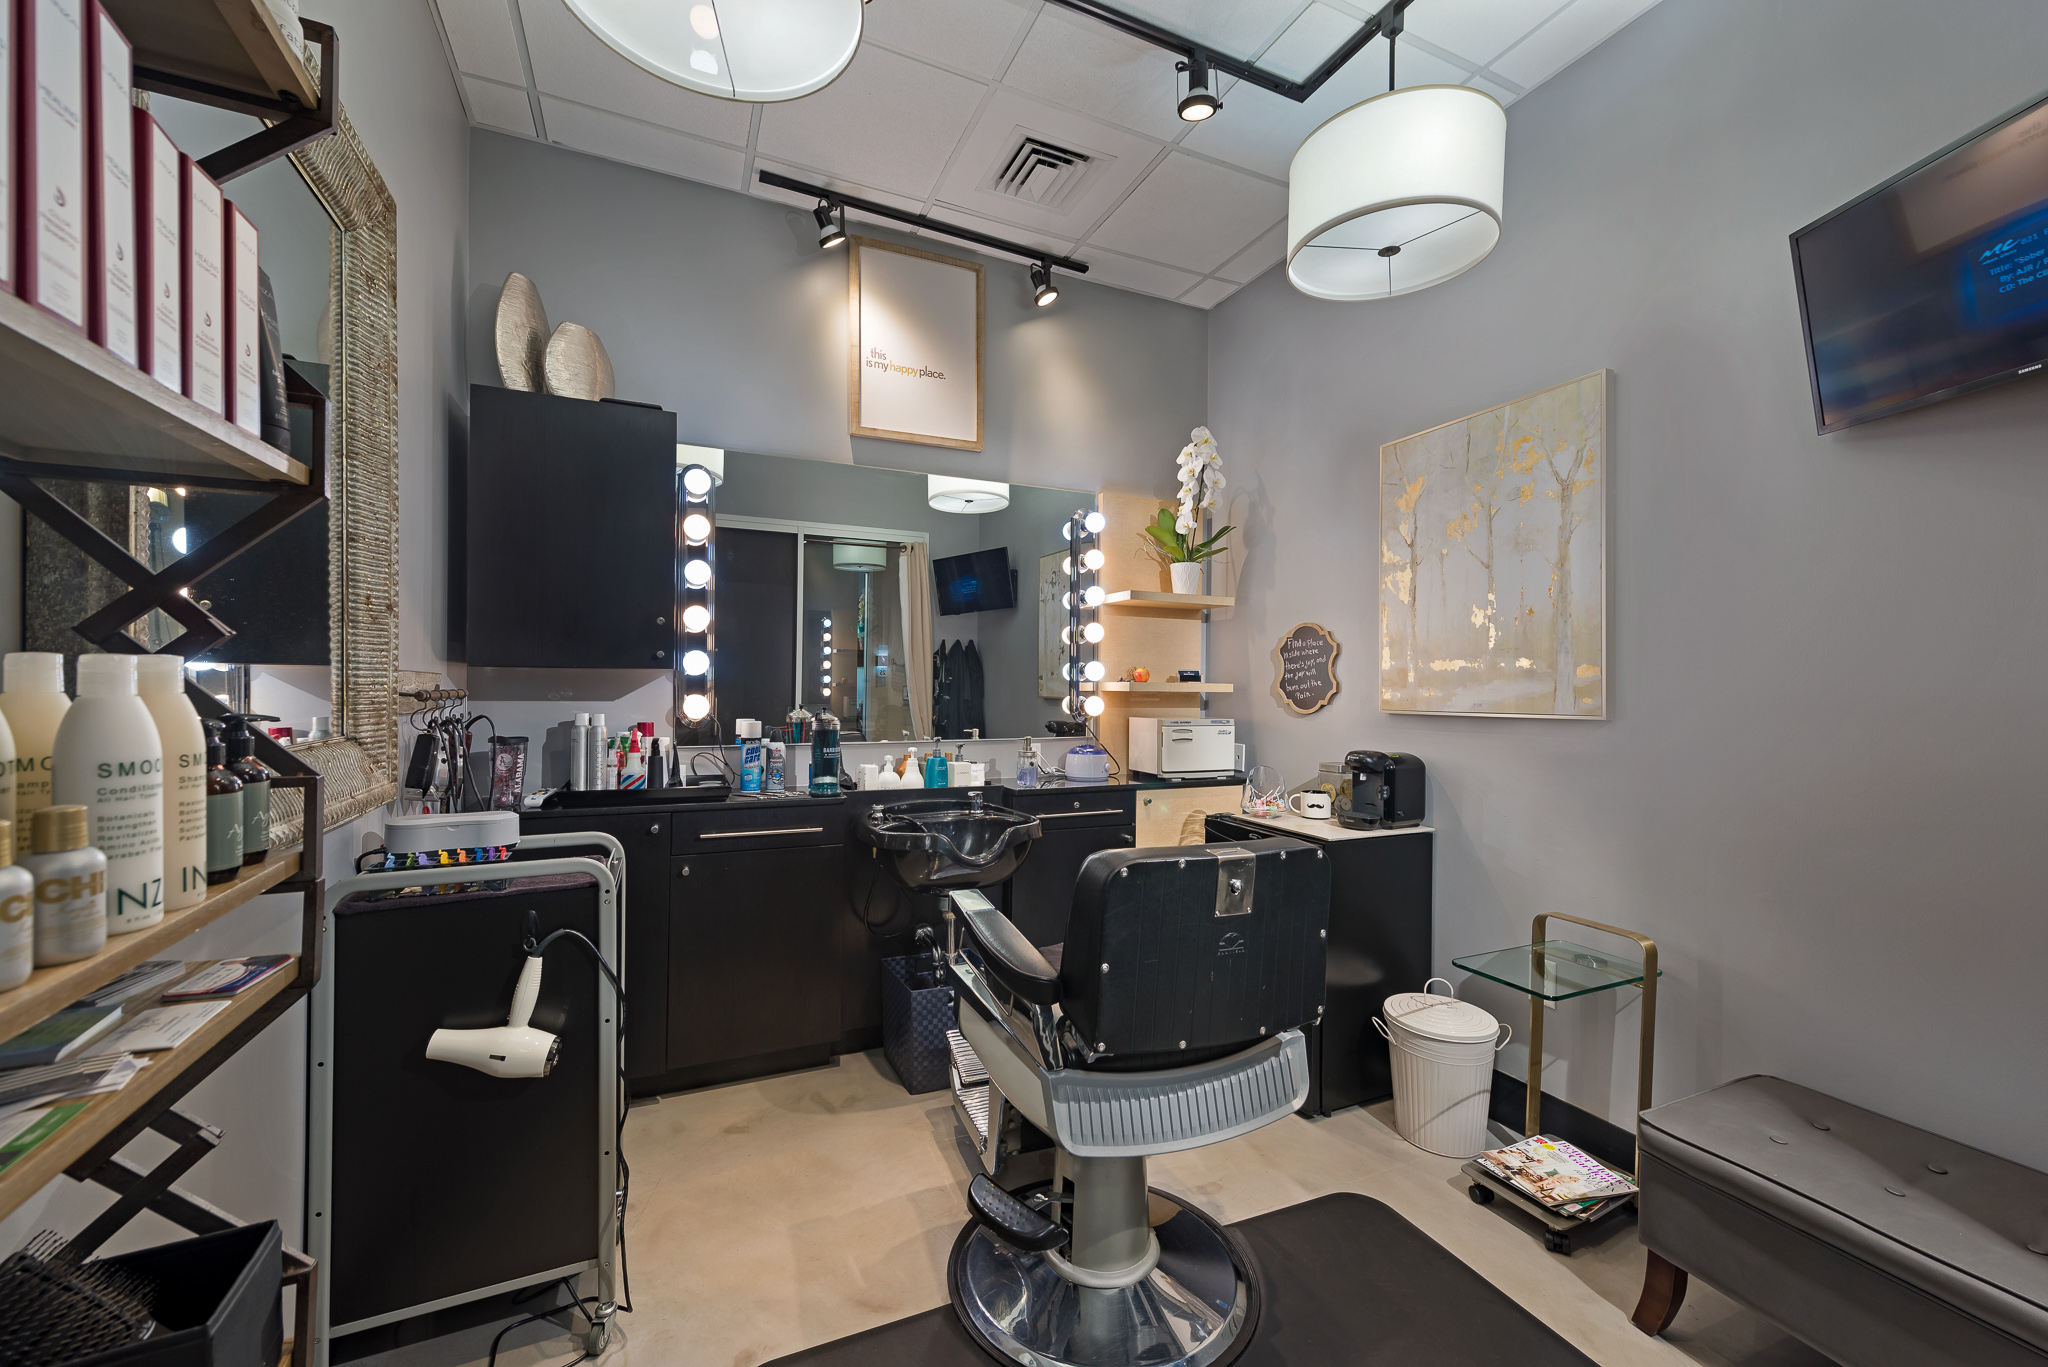 iStudio Salons Southport Fort Lauderdale Interior Studio